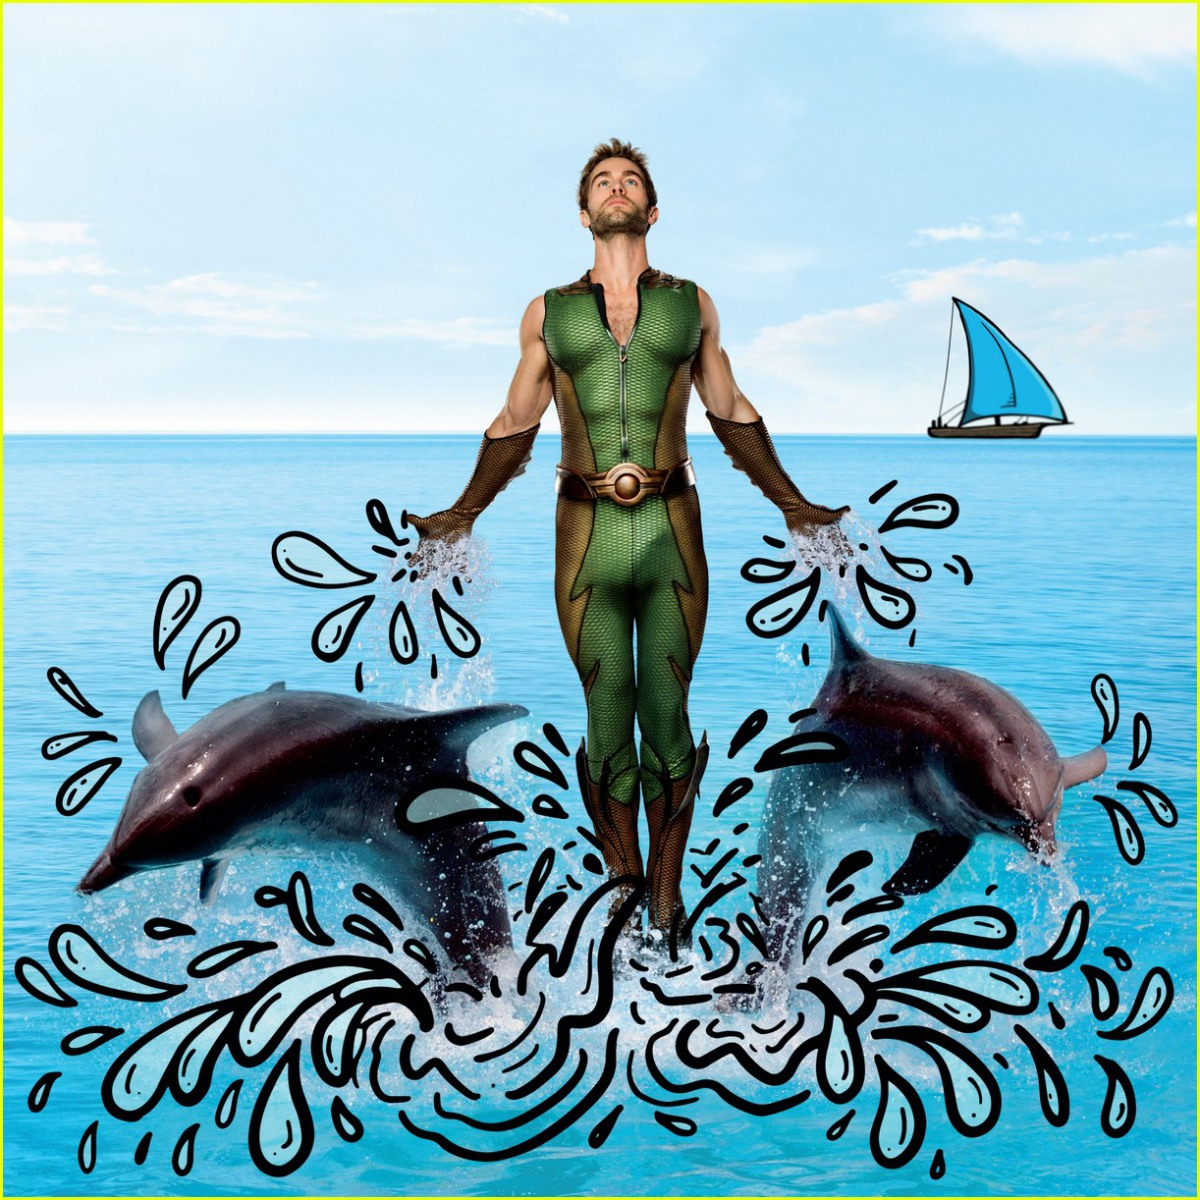 The Deep Calendar - March 2020 (featuring Chace Crawford from The Boys)